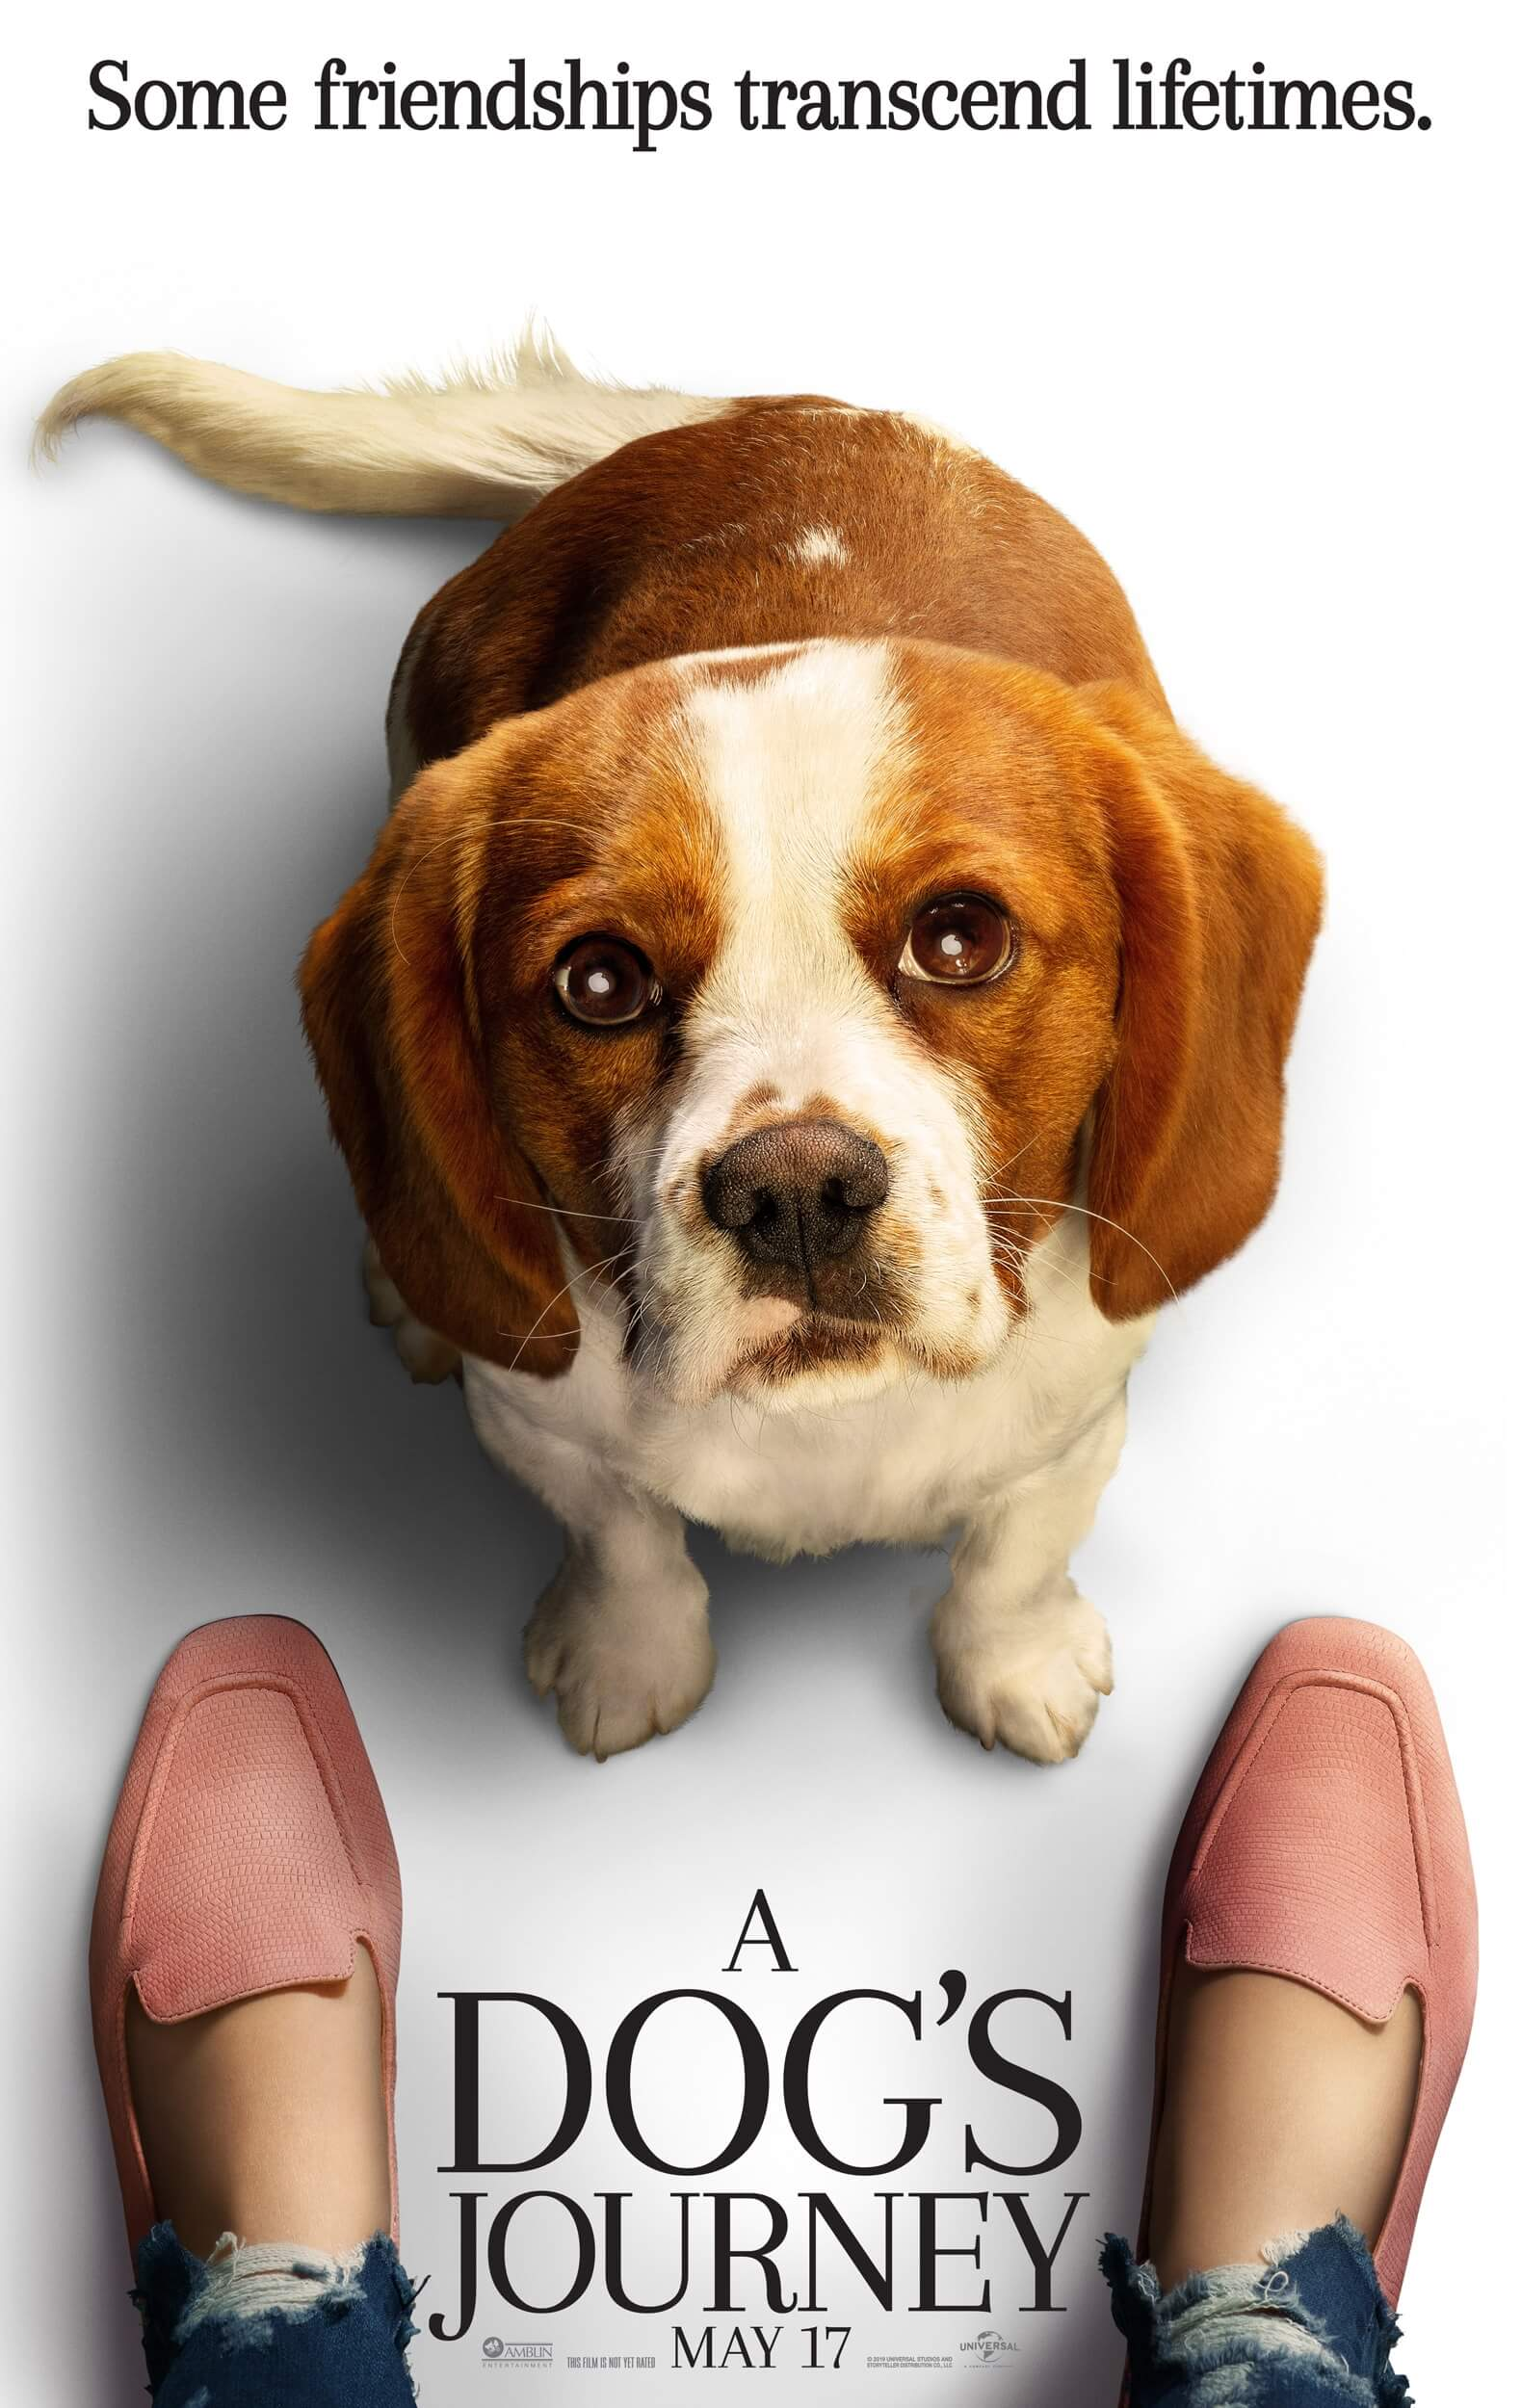 A Dog's Journey - Poster 3